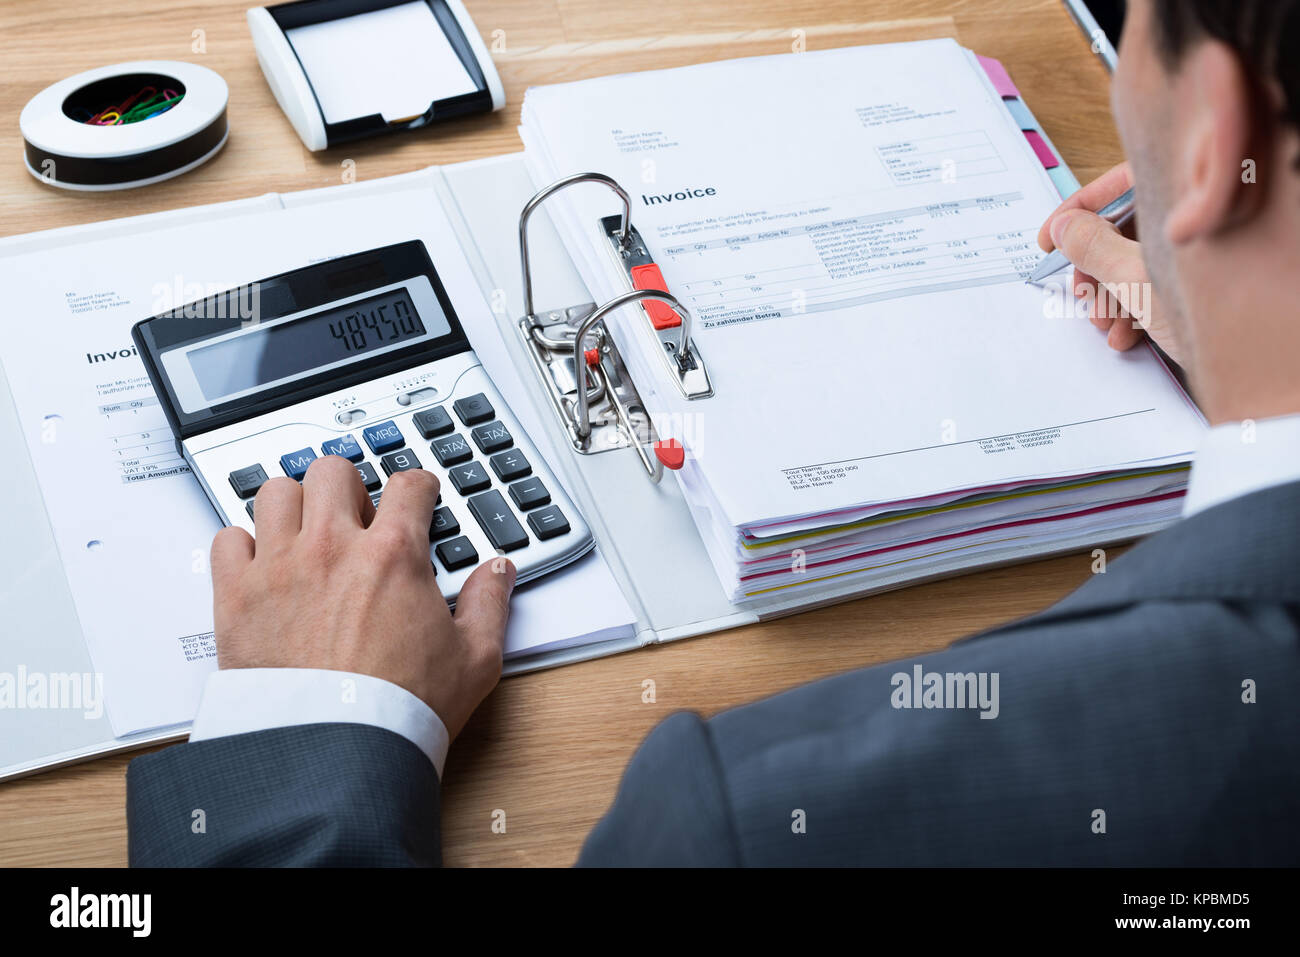 Businessman Calculating Invoice At Office Desk - Stock Image